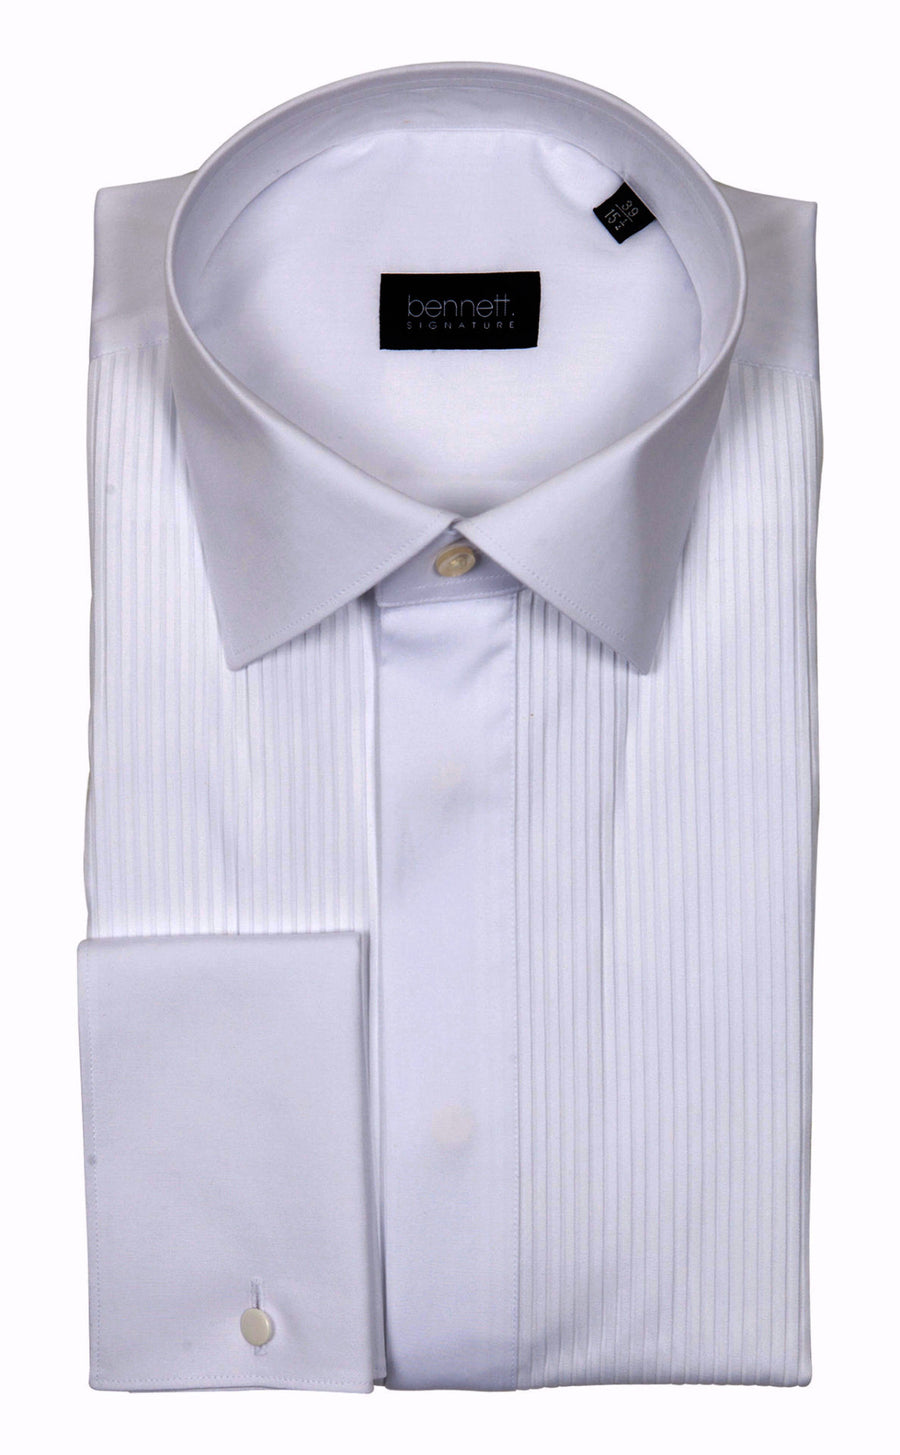 Bennett Signature Dinner Shirt Regular Collar in White